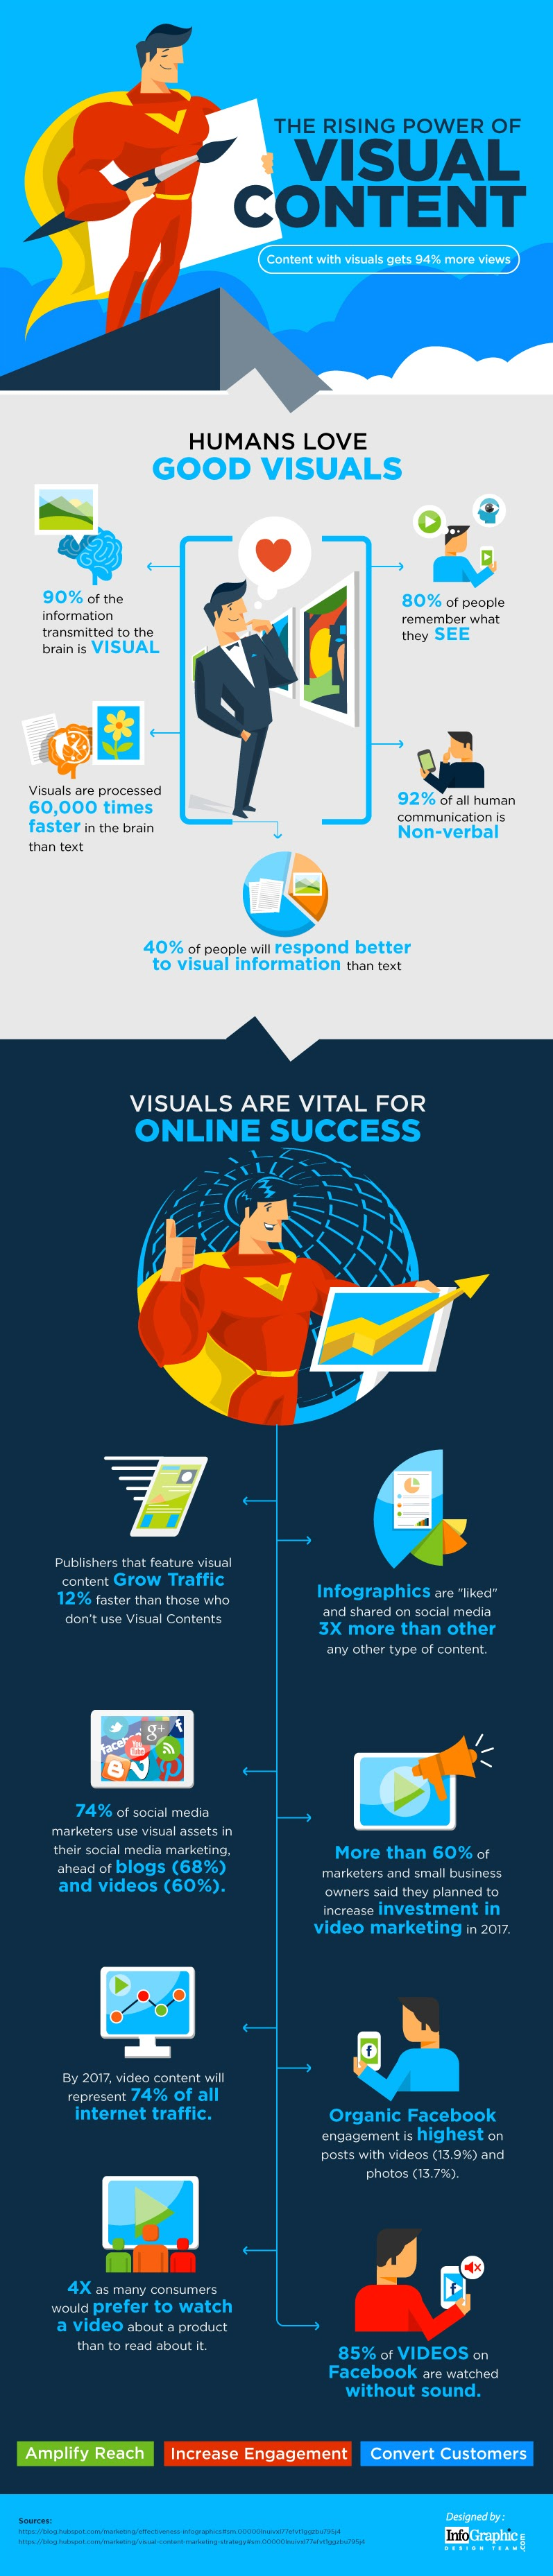 The Rising Power of Visual Content [Infographic] | Social Media Today